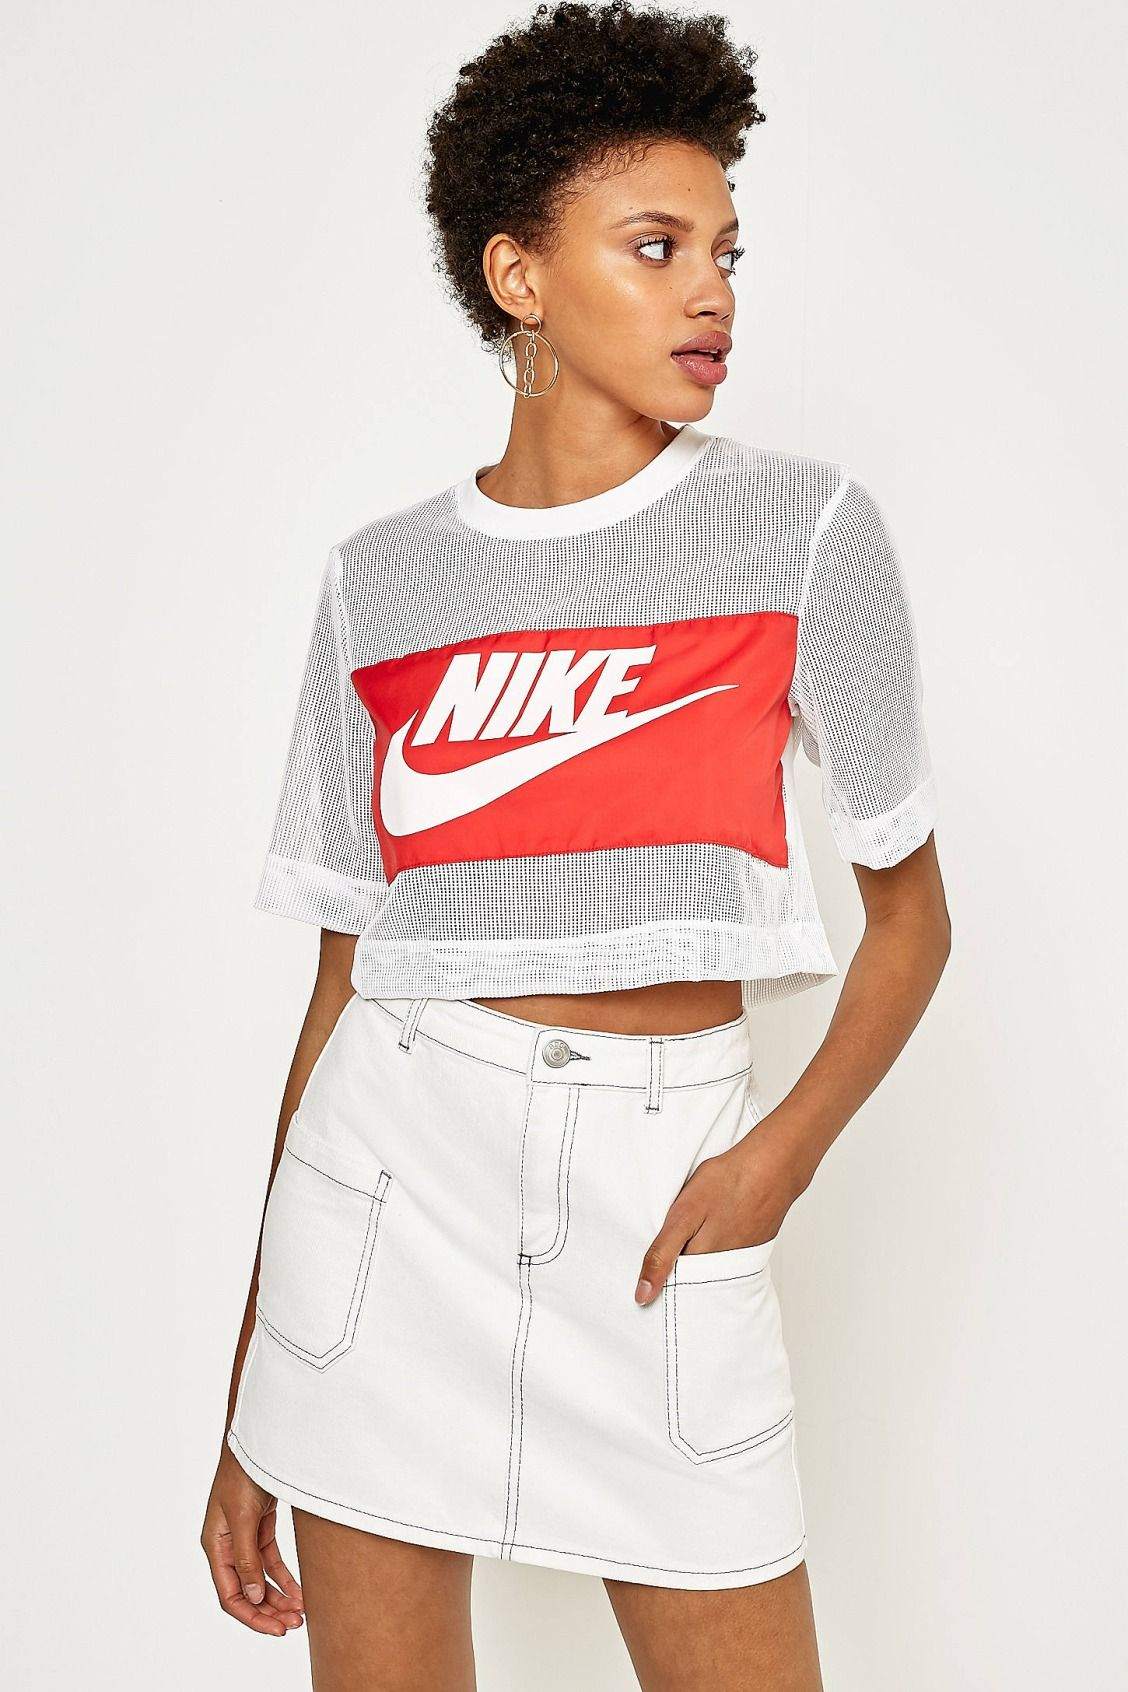 Nike White Mesh Swoosh Panel Cropped TShirt